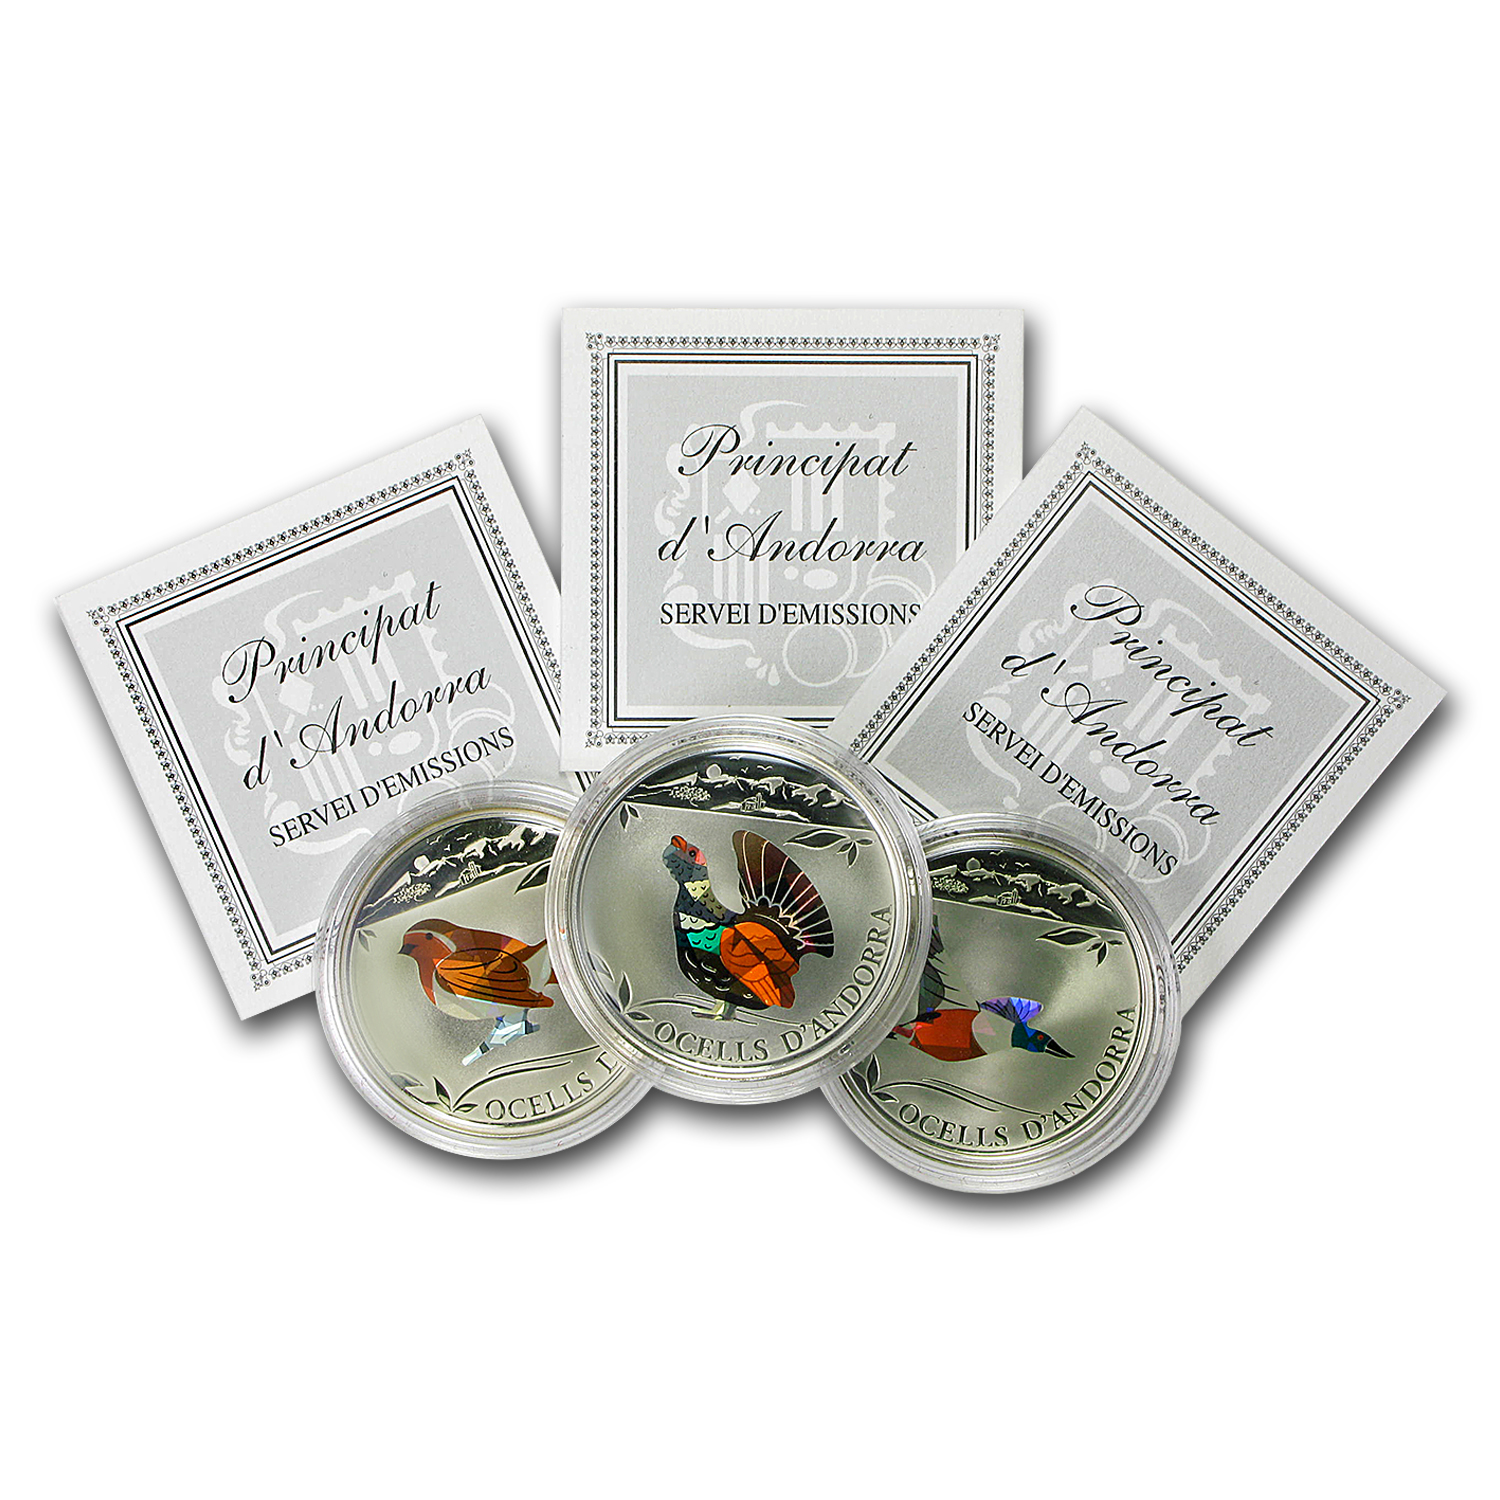 Andorra 2012 Proof Silver 5 Diners Prism Birds - 3 Coin Set